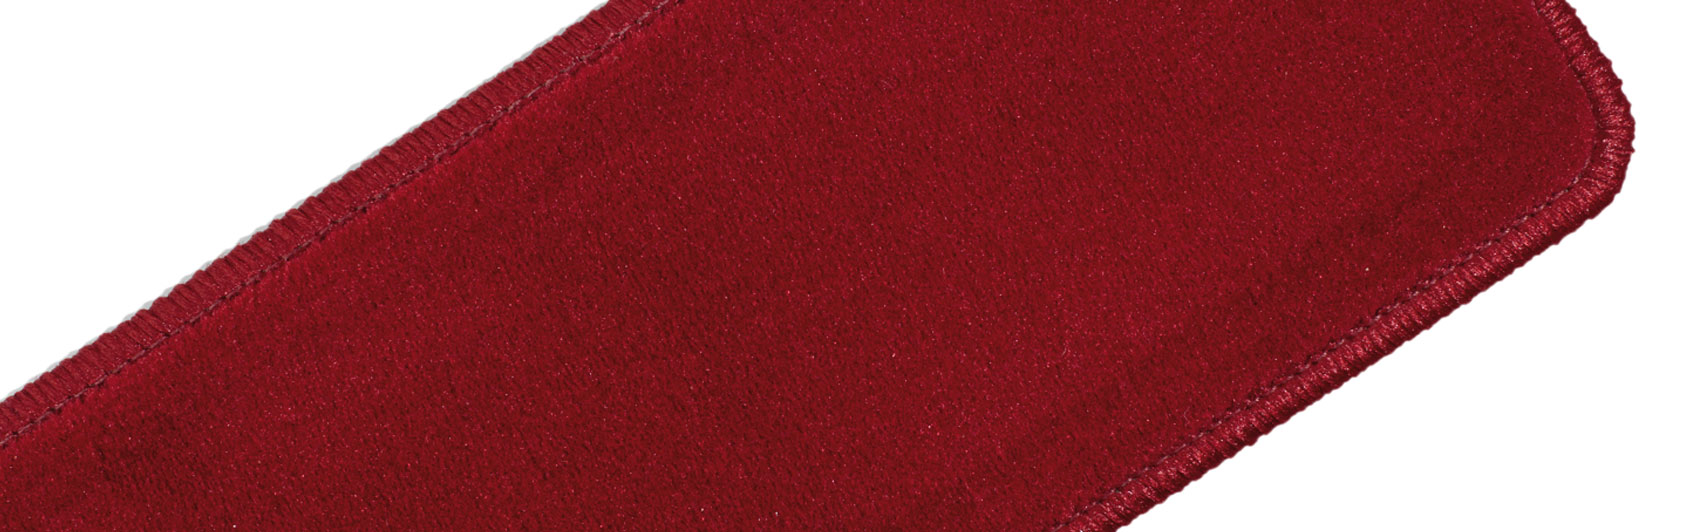 sample hassock plain velvet color code 611 color light red